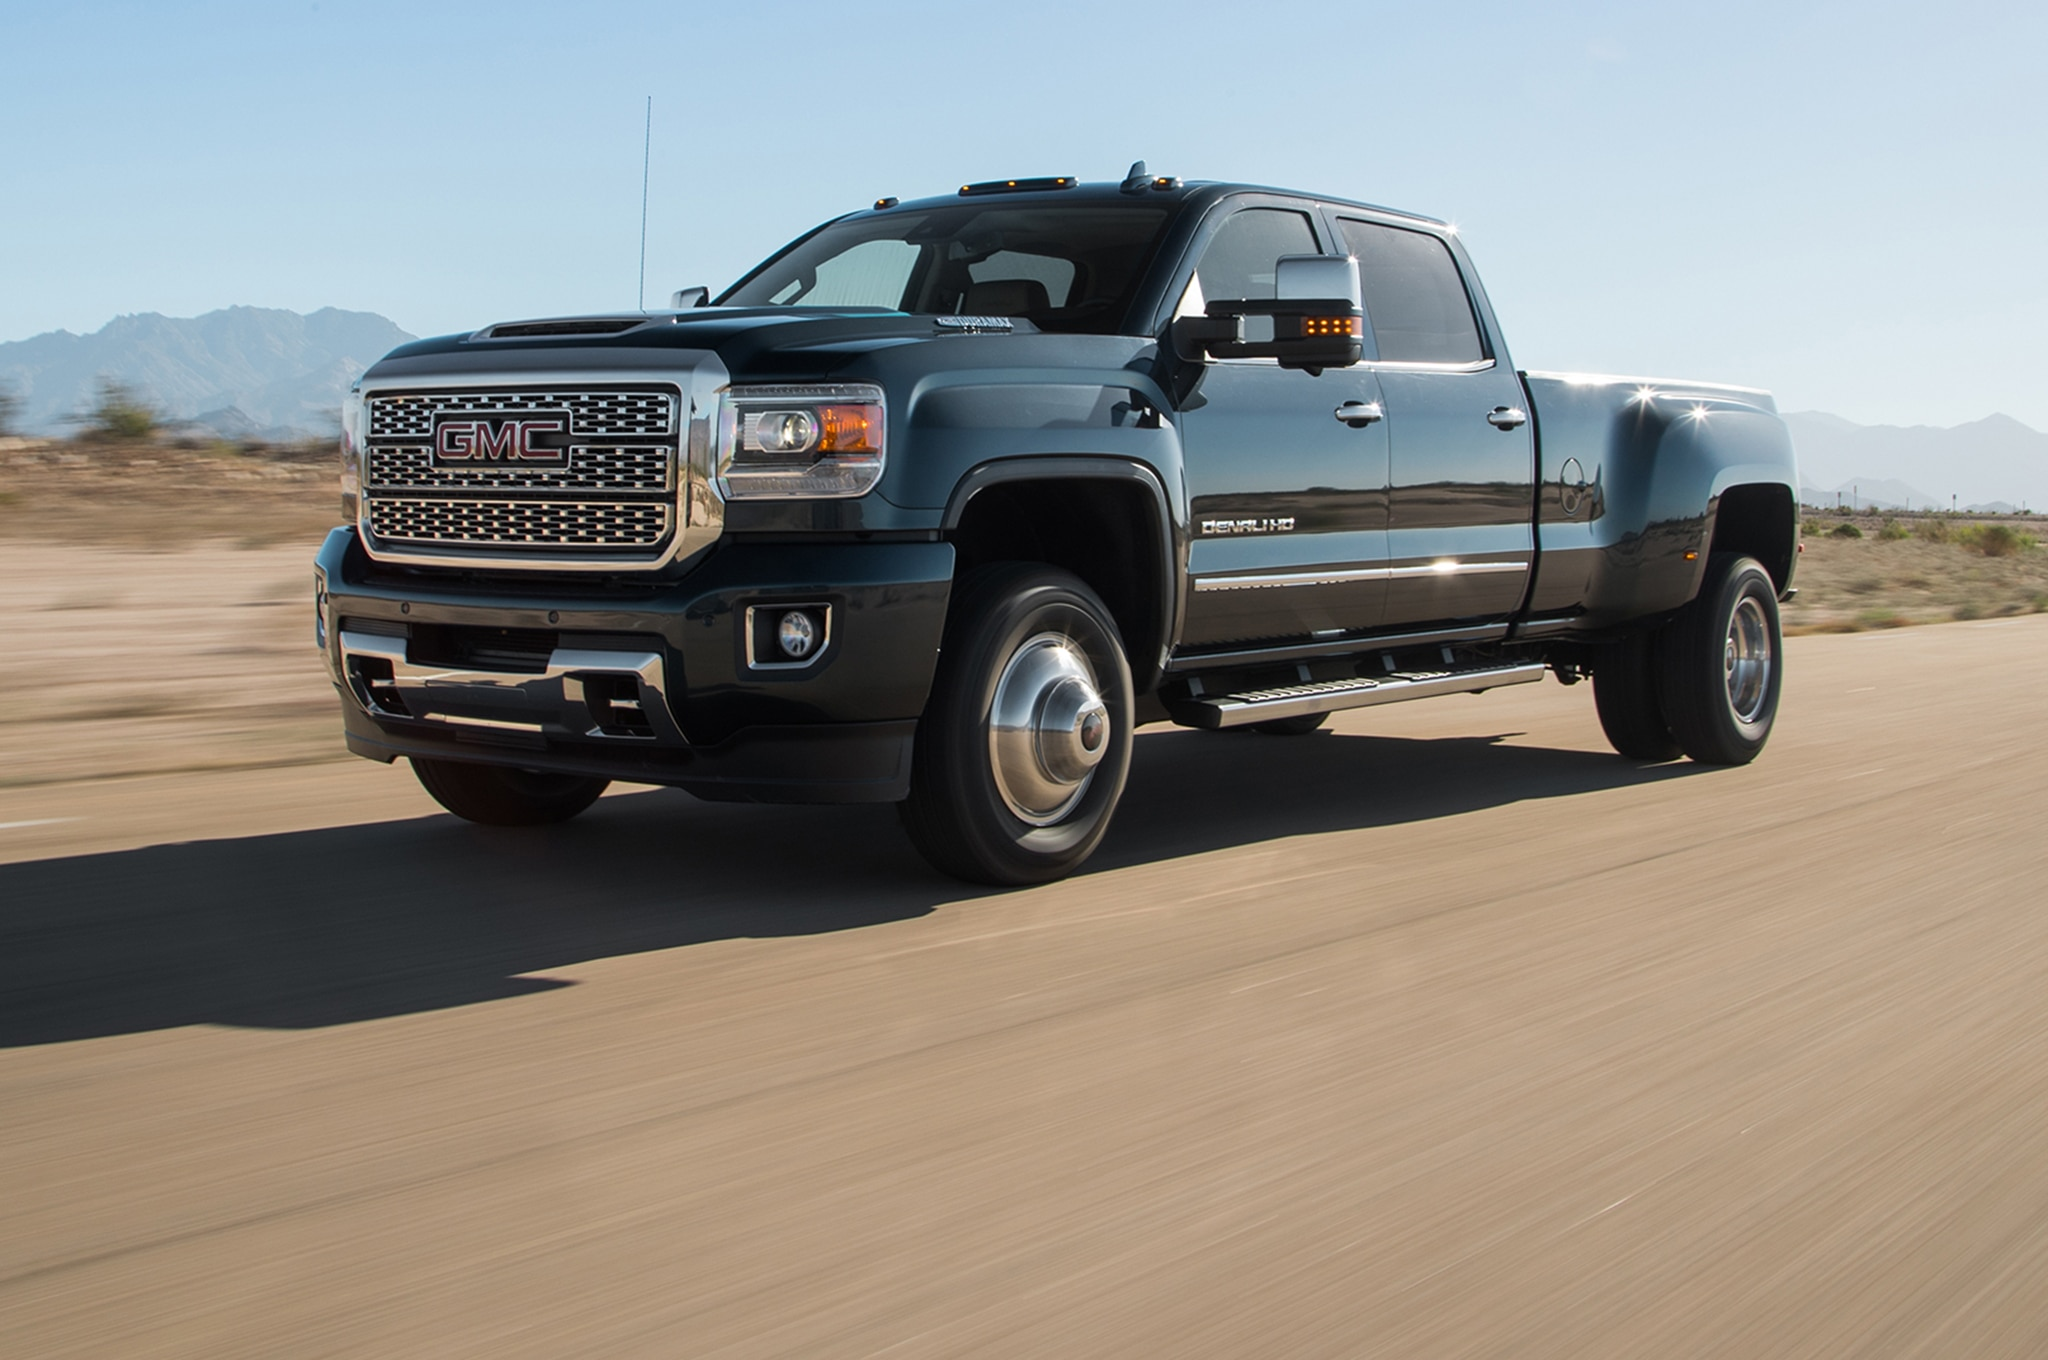 2018 GMC Sierra Denali HD Duramax Front Three Quarter In Motion 00